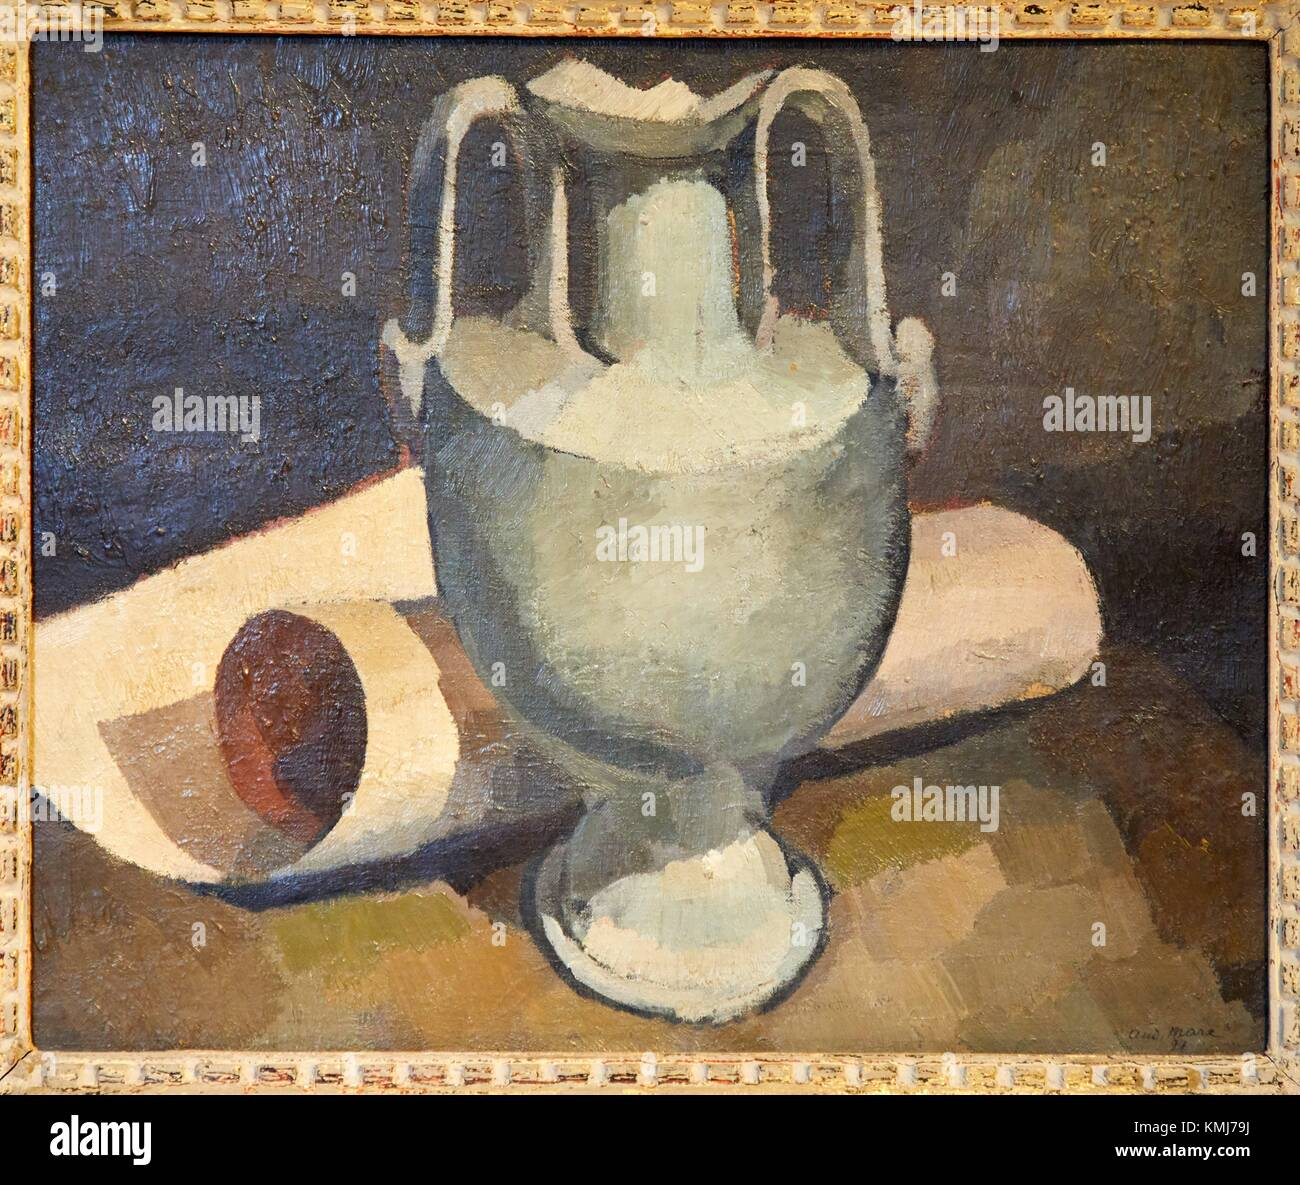 Bevorzugt Nature Morte Stock Photos & Nature Morte Stock Images - Alamy AI01